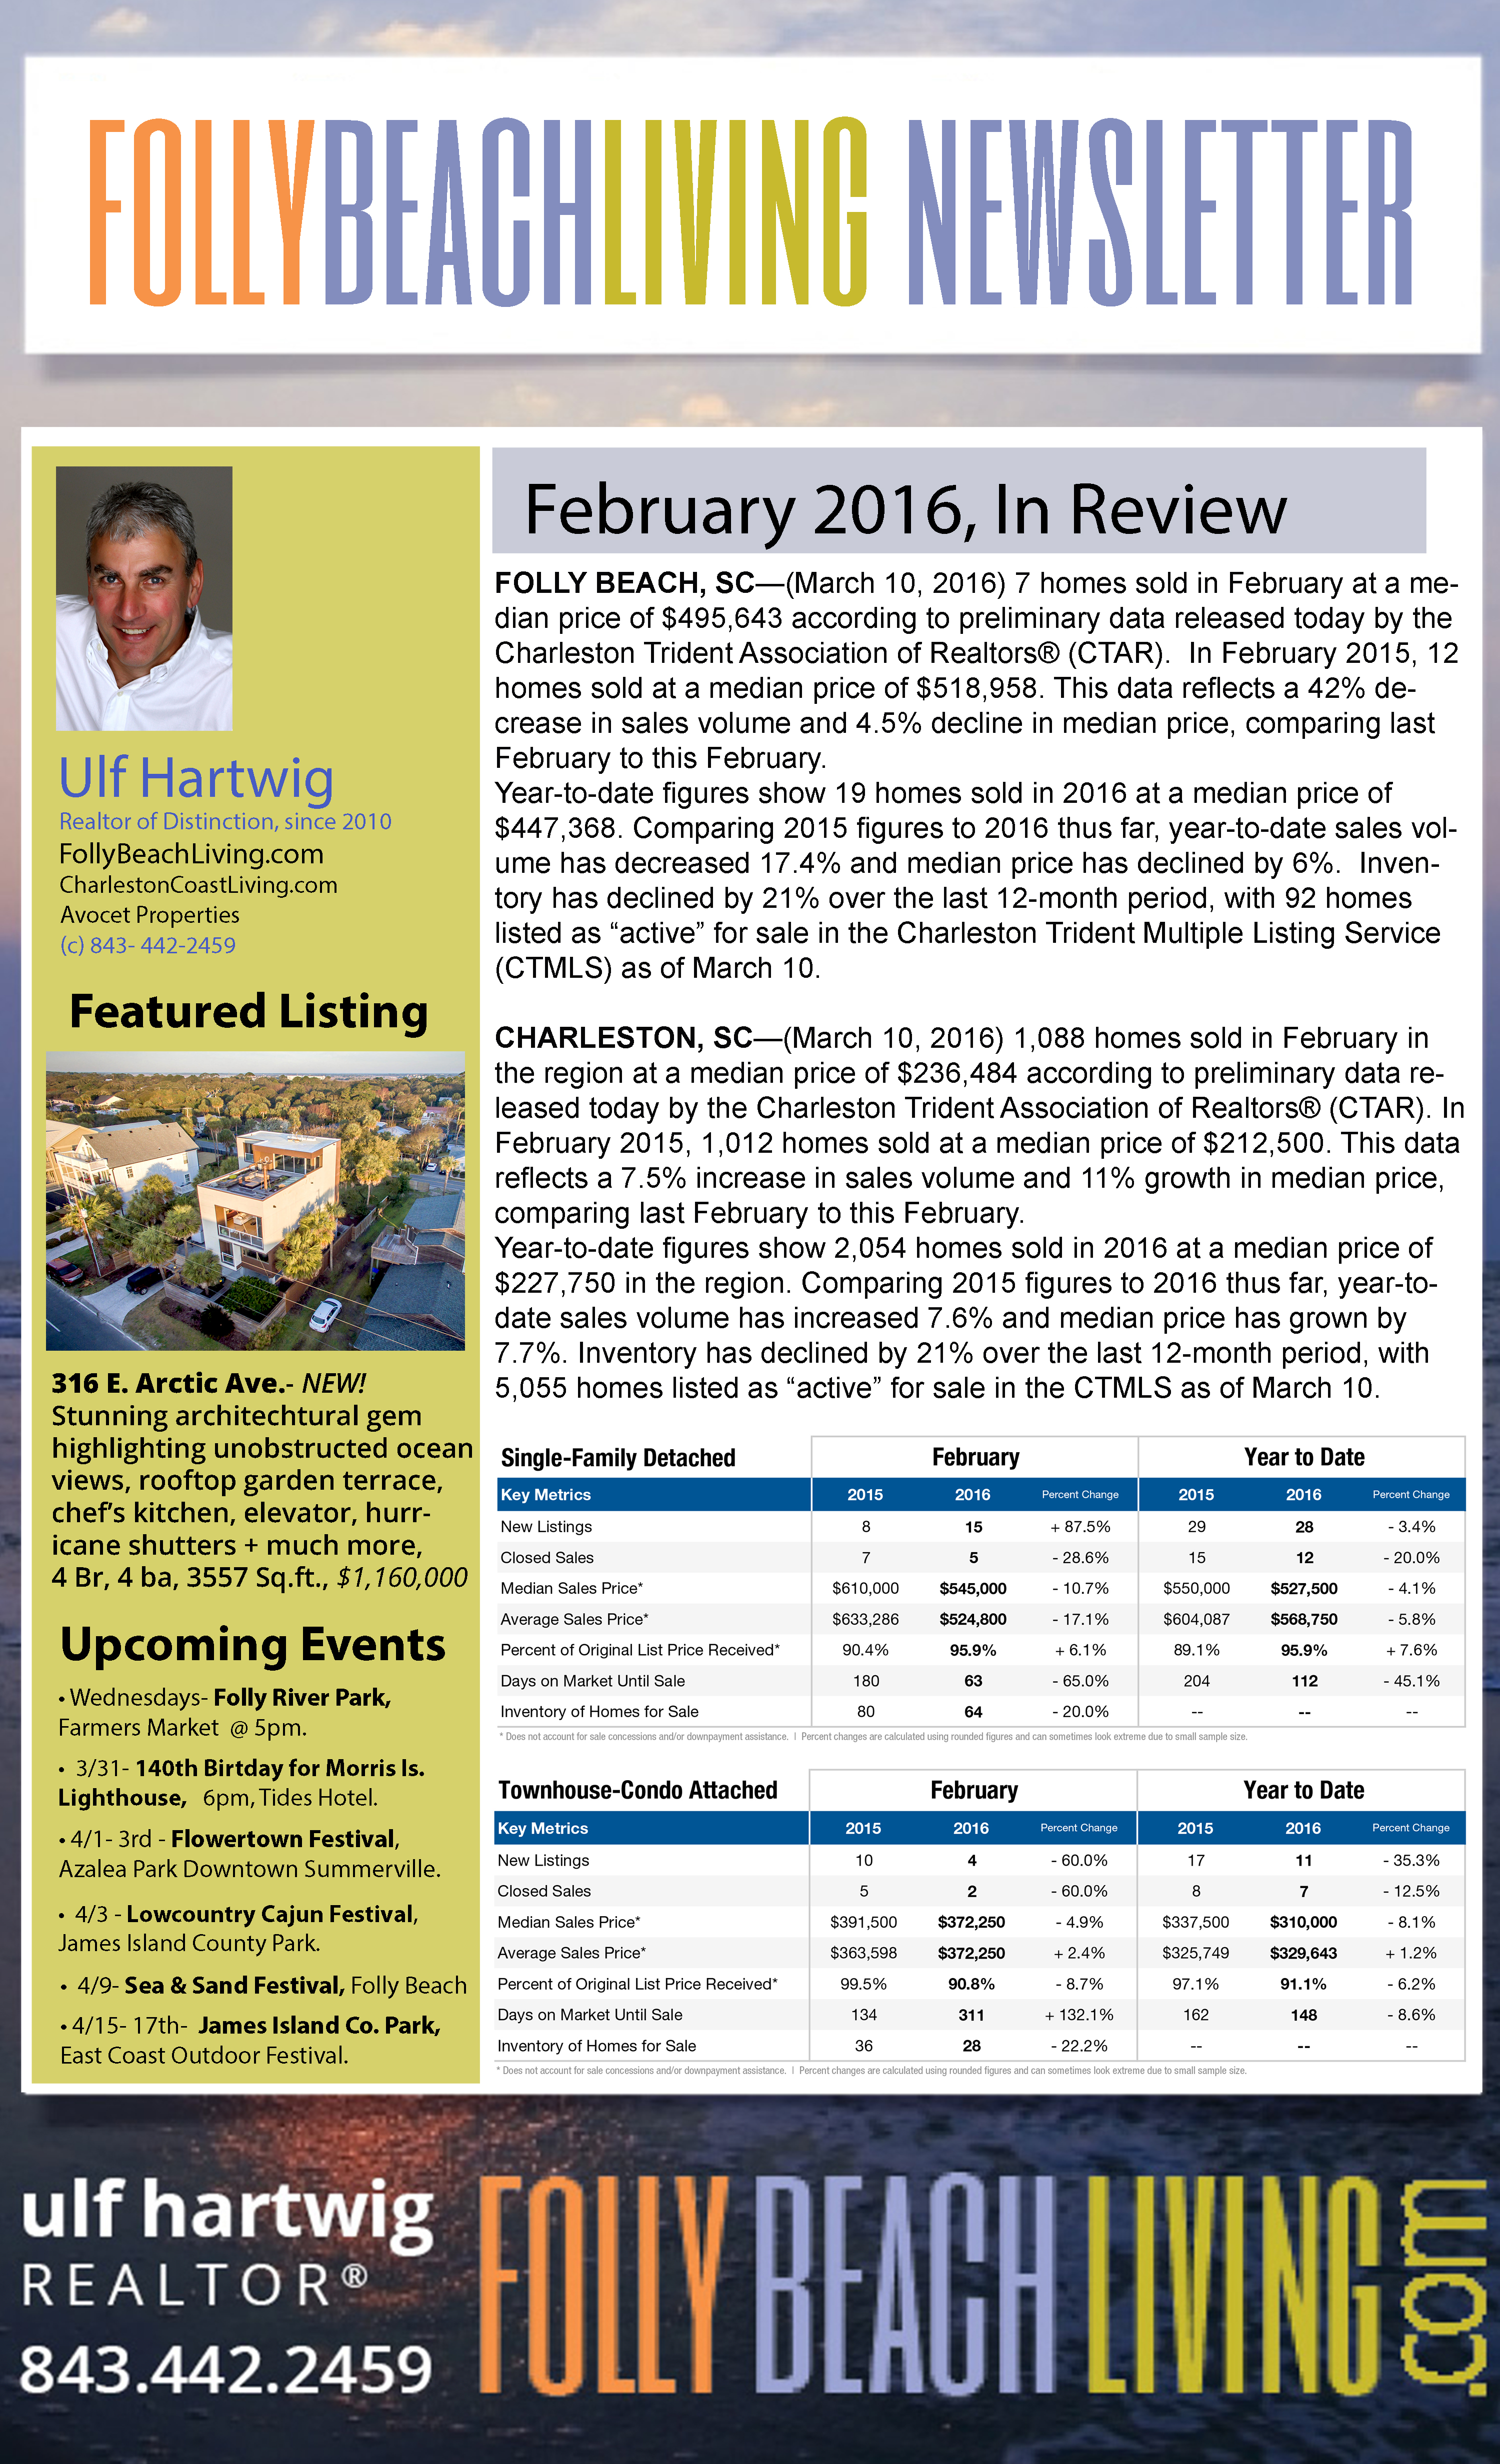 March 2016 Folly Beach Living Newsletter